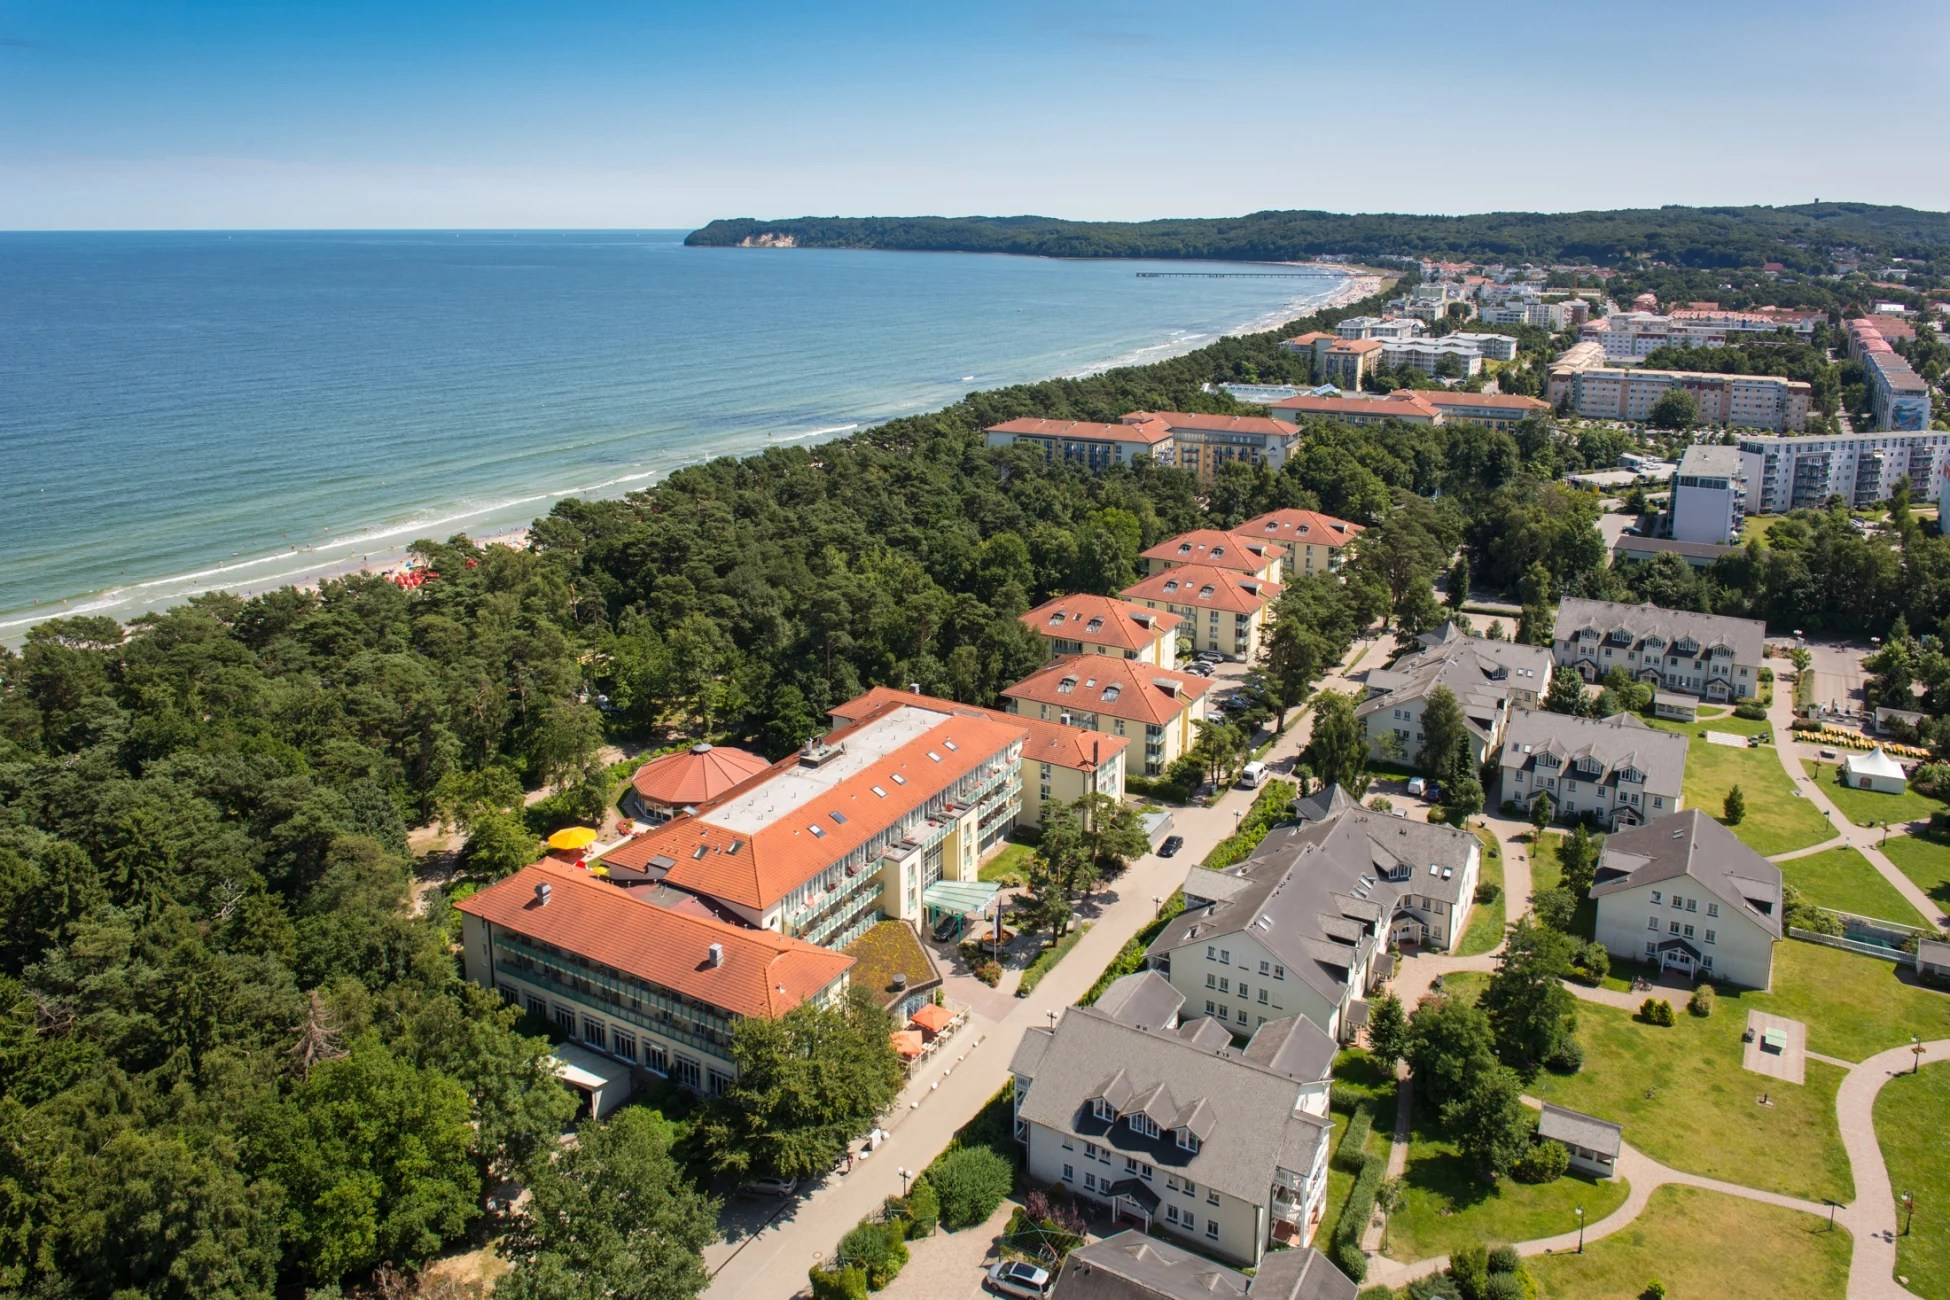 Omas Küche Binz Bewertung Resort Dorint Seehotel Binz Therme Binz Rügen Binz Trivago Co Uk